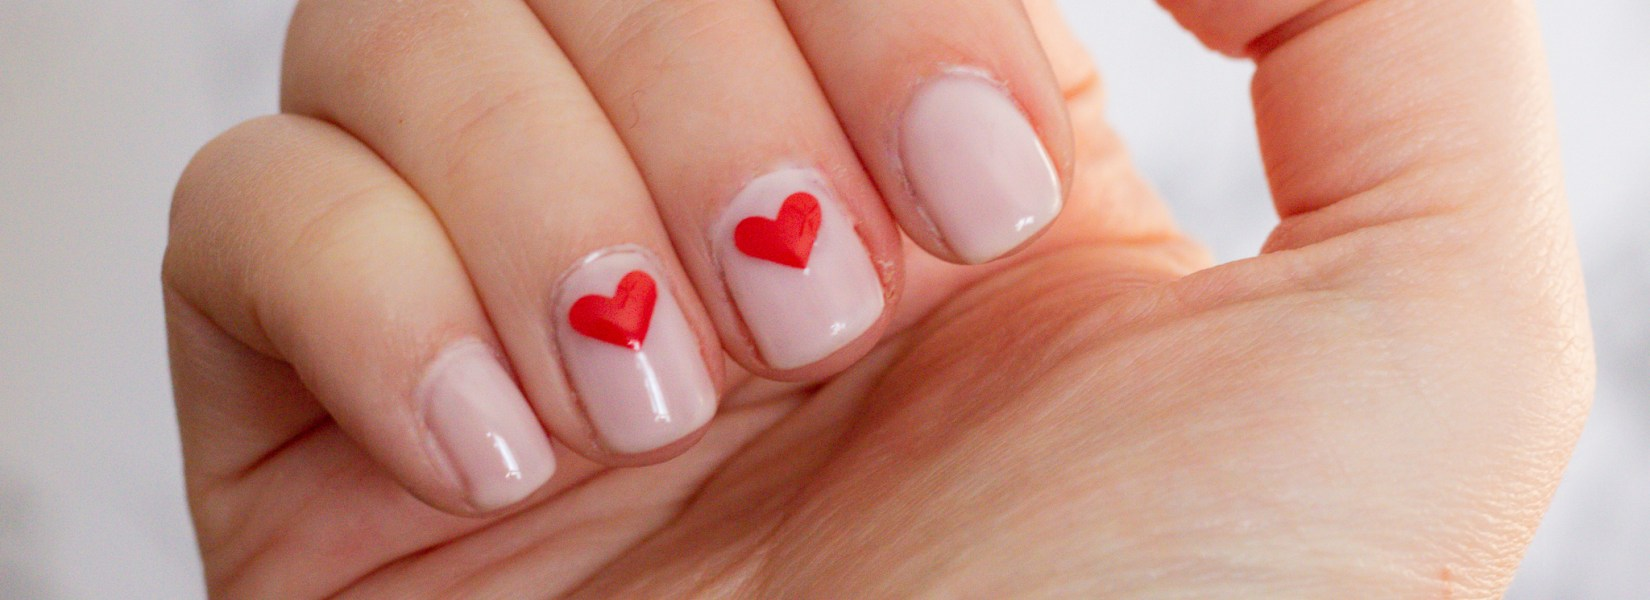 Easy At Home Gel Manicure With DIY Decals